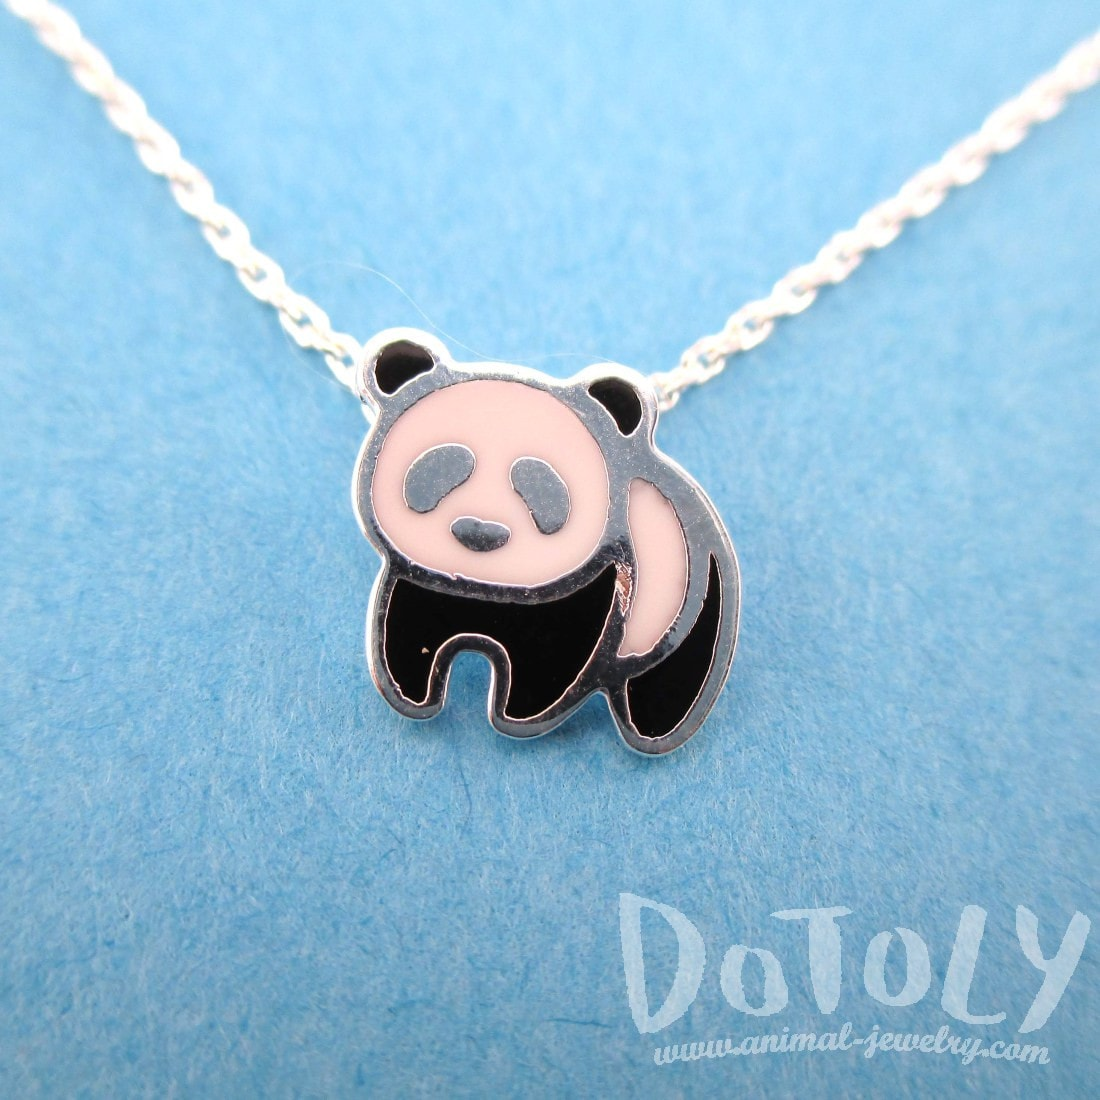 Panda Bear Shaped Enamel Charm Necklace in Silver | Animal Jewelry